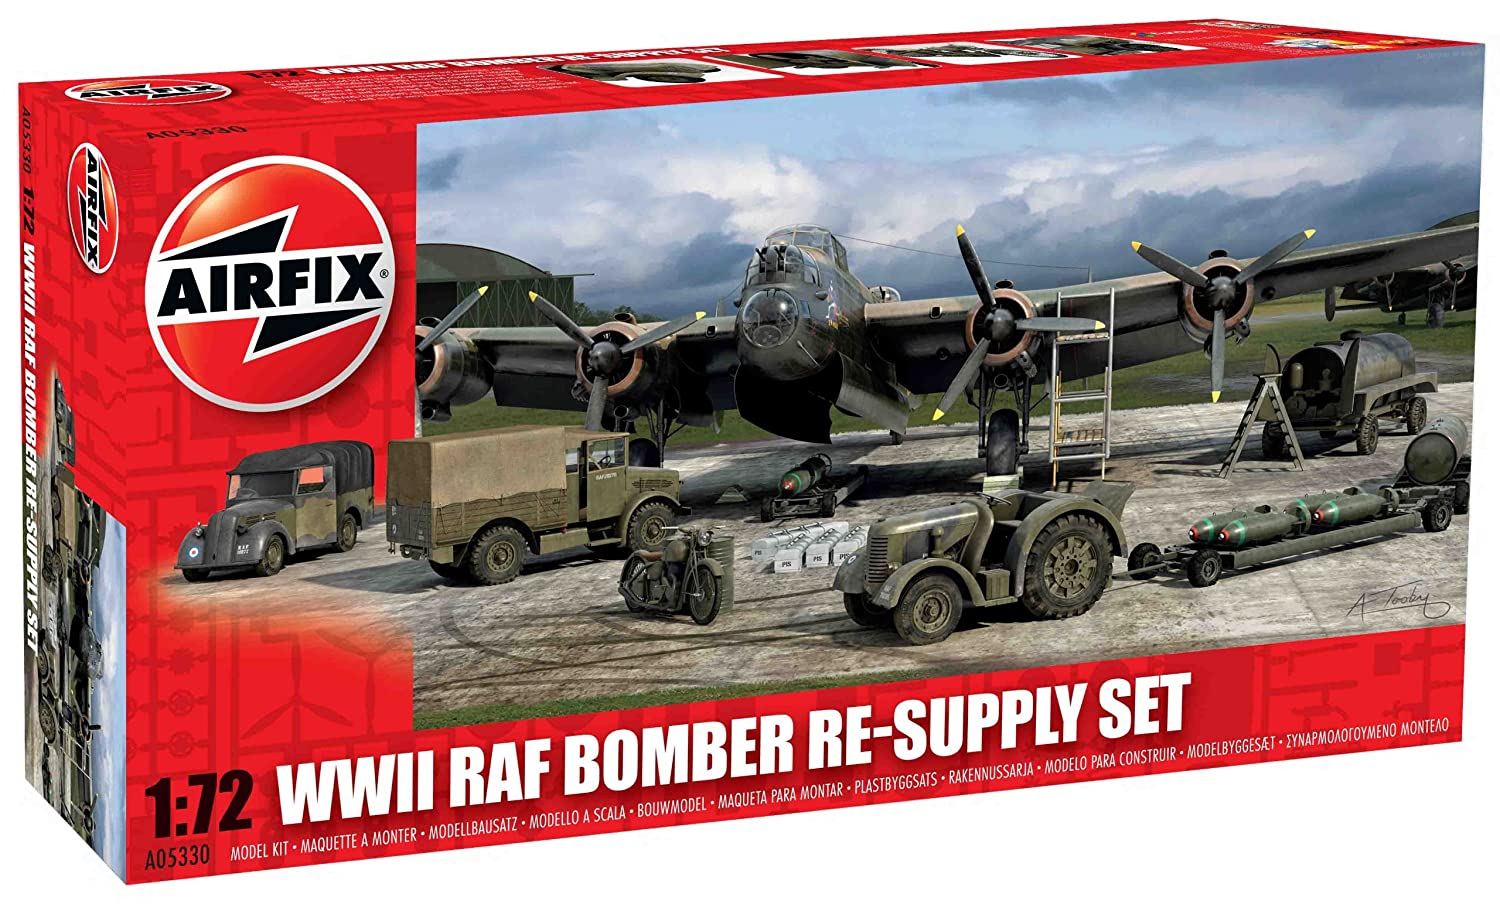 Airfix A05330 WWII RAF Bomber Re-Supply Set, 1:72 Scale